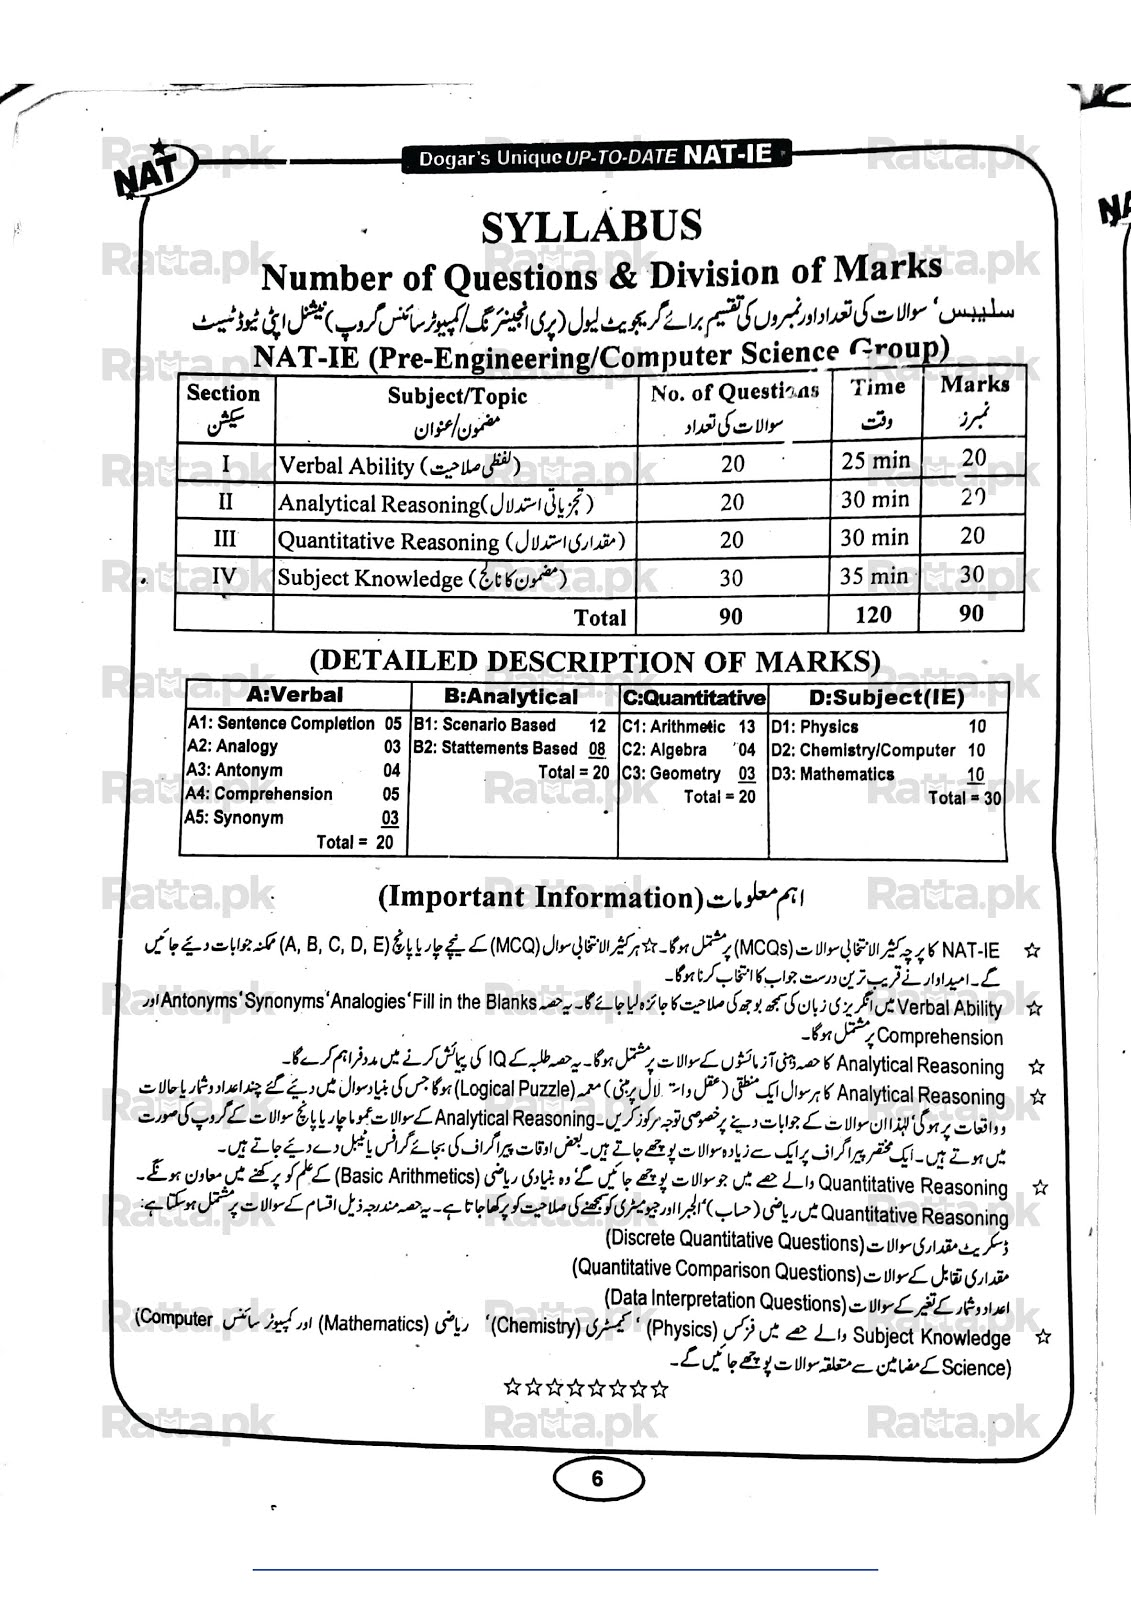 NAT-IE Syllabus 2018, Division of Marks and Important Information